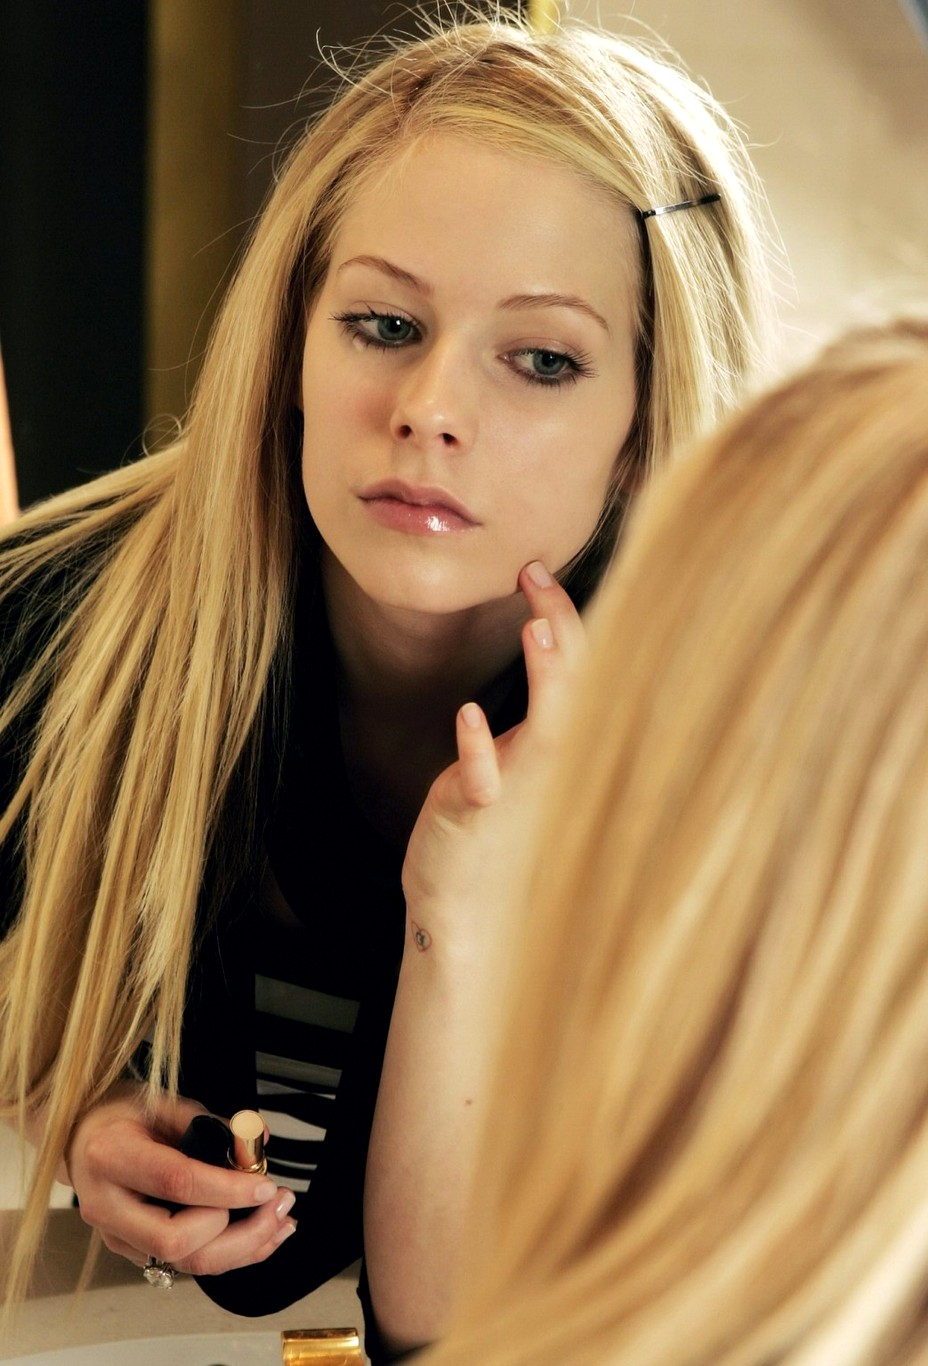 Understand you. Xxxvideo avril lavigne that